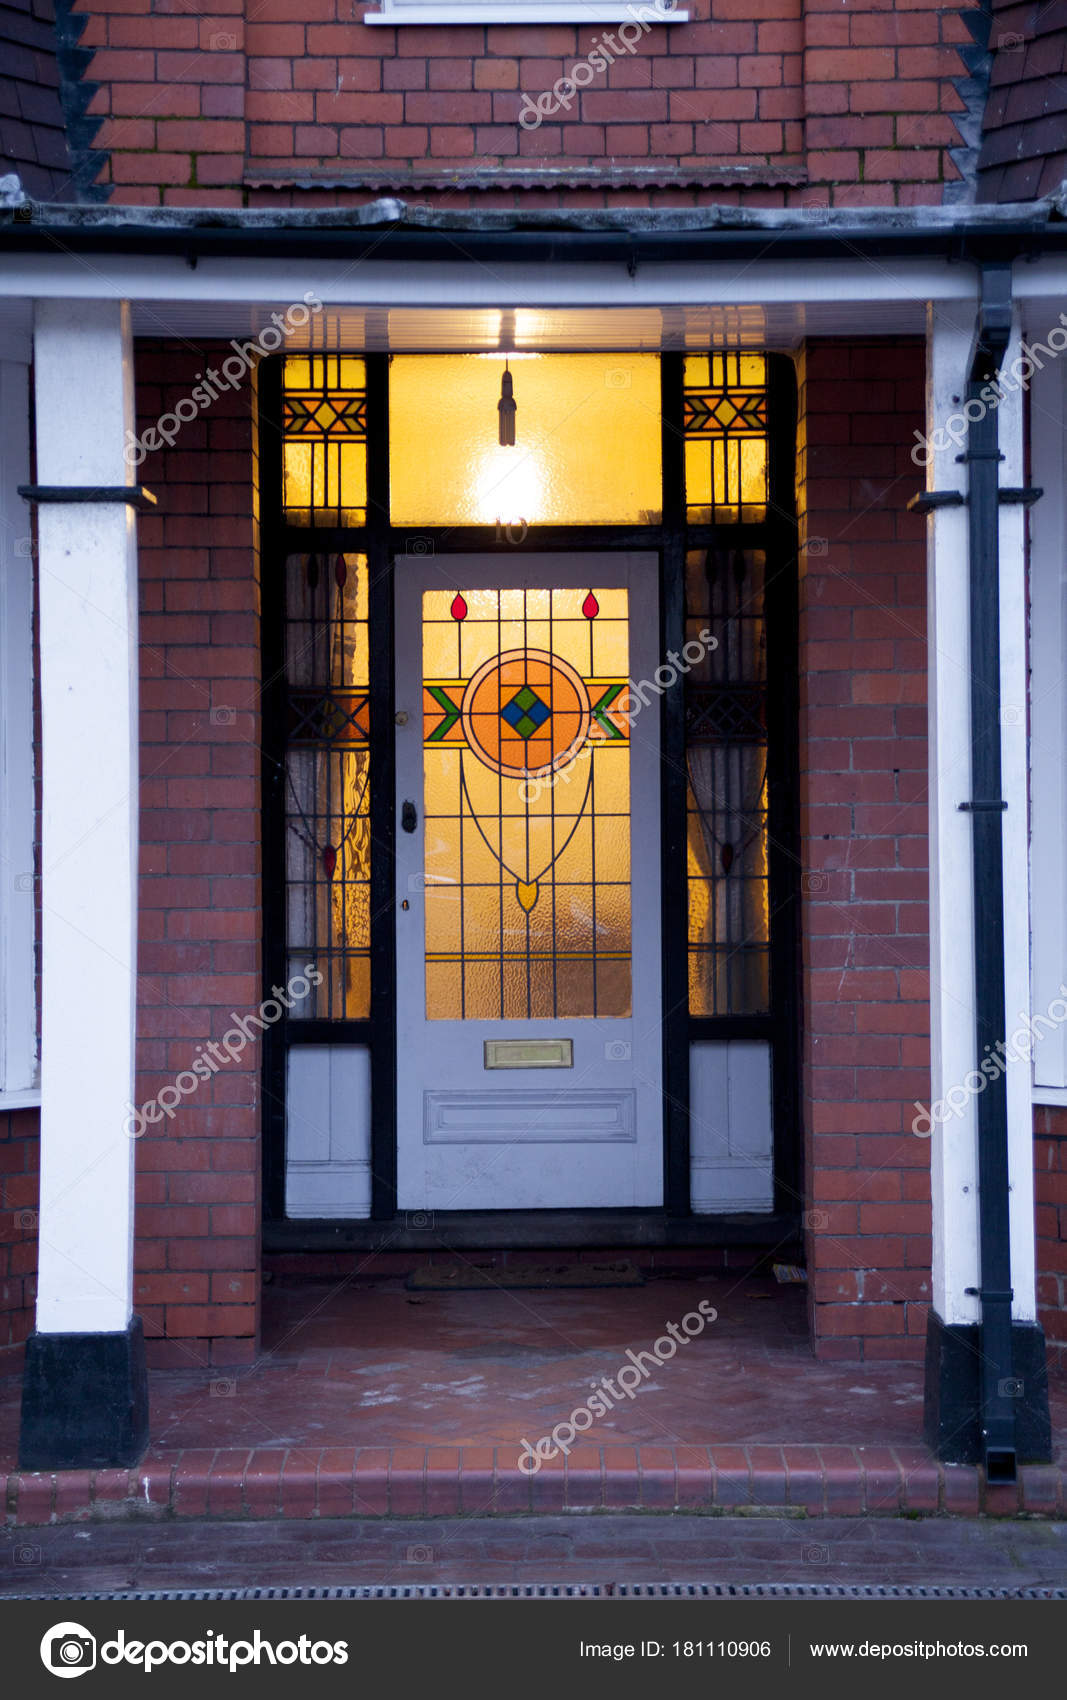 Old Door United Kingdom Wolverh&ton Old Rusty Doors View u2014 Stock Photo & Old Door United Kingdom Wolverhampton Old Rusty Doors View u2014 Stock ...